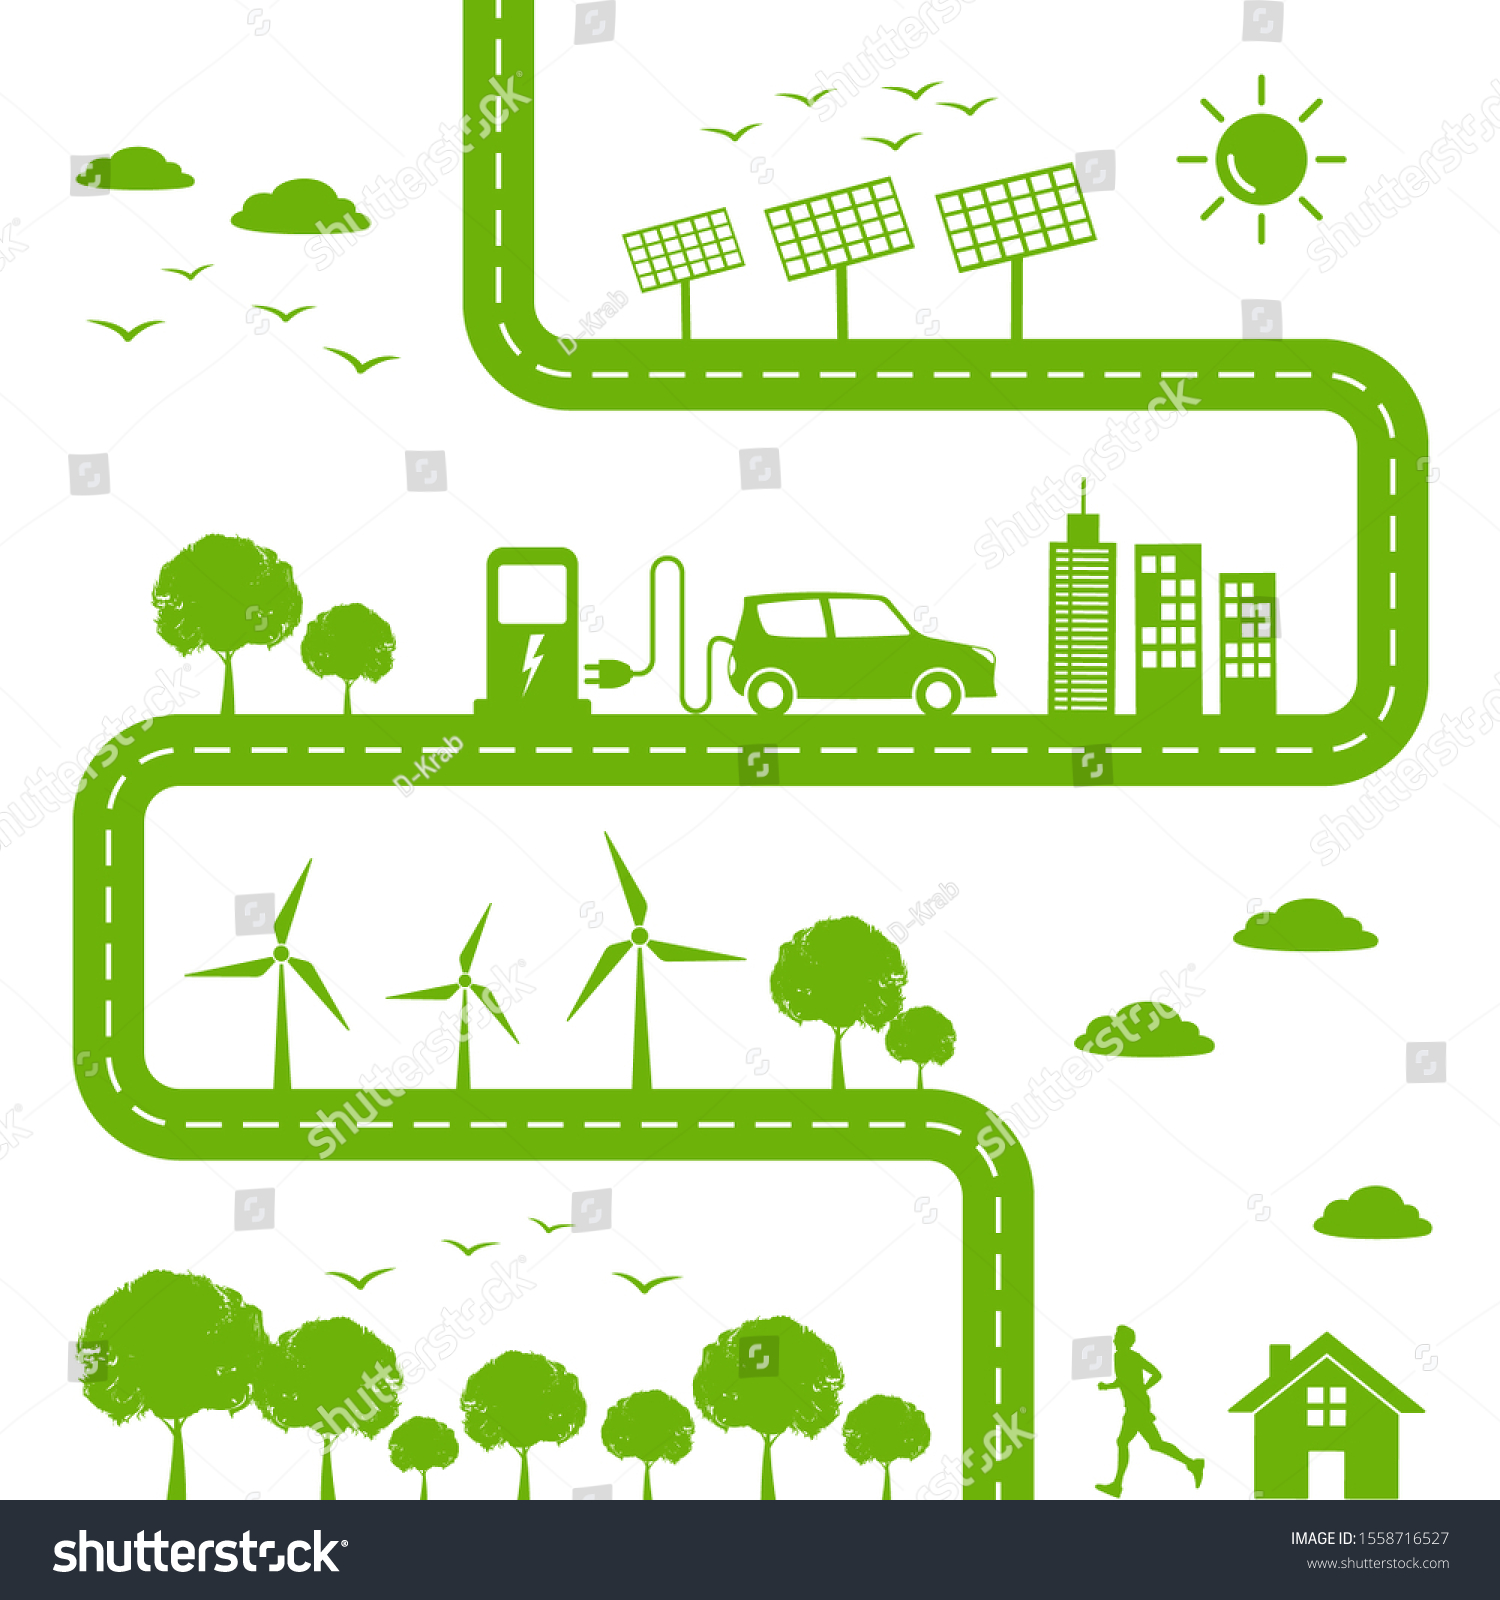 Sustainable Ecology Friendly Green Cities Environmental Stock